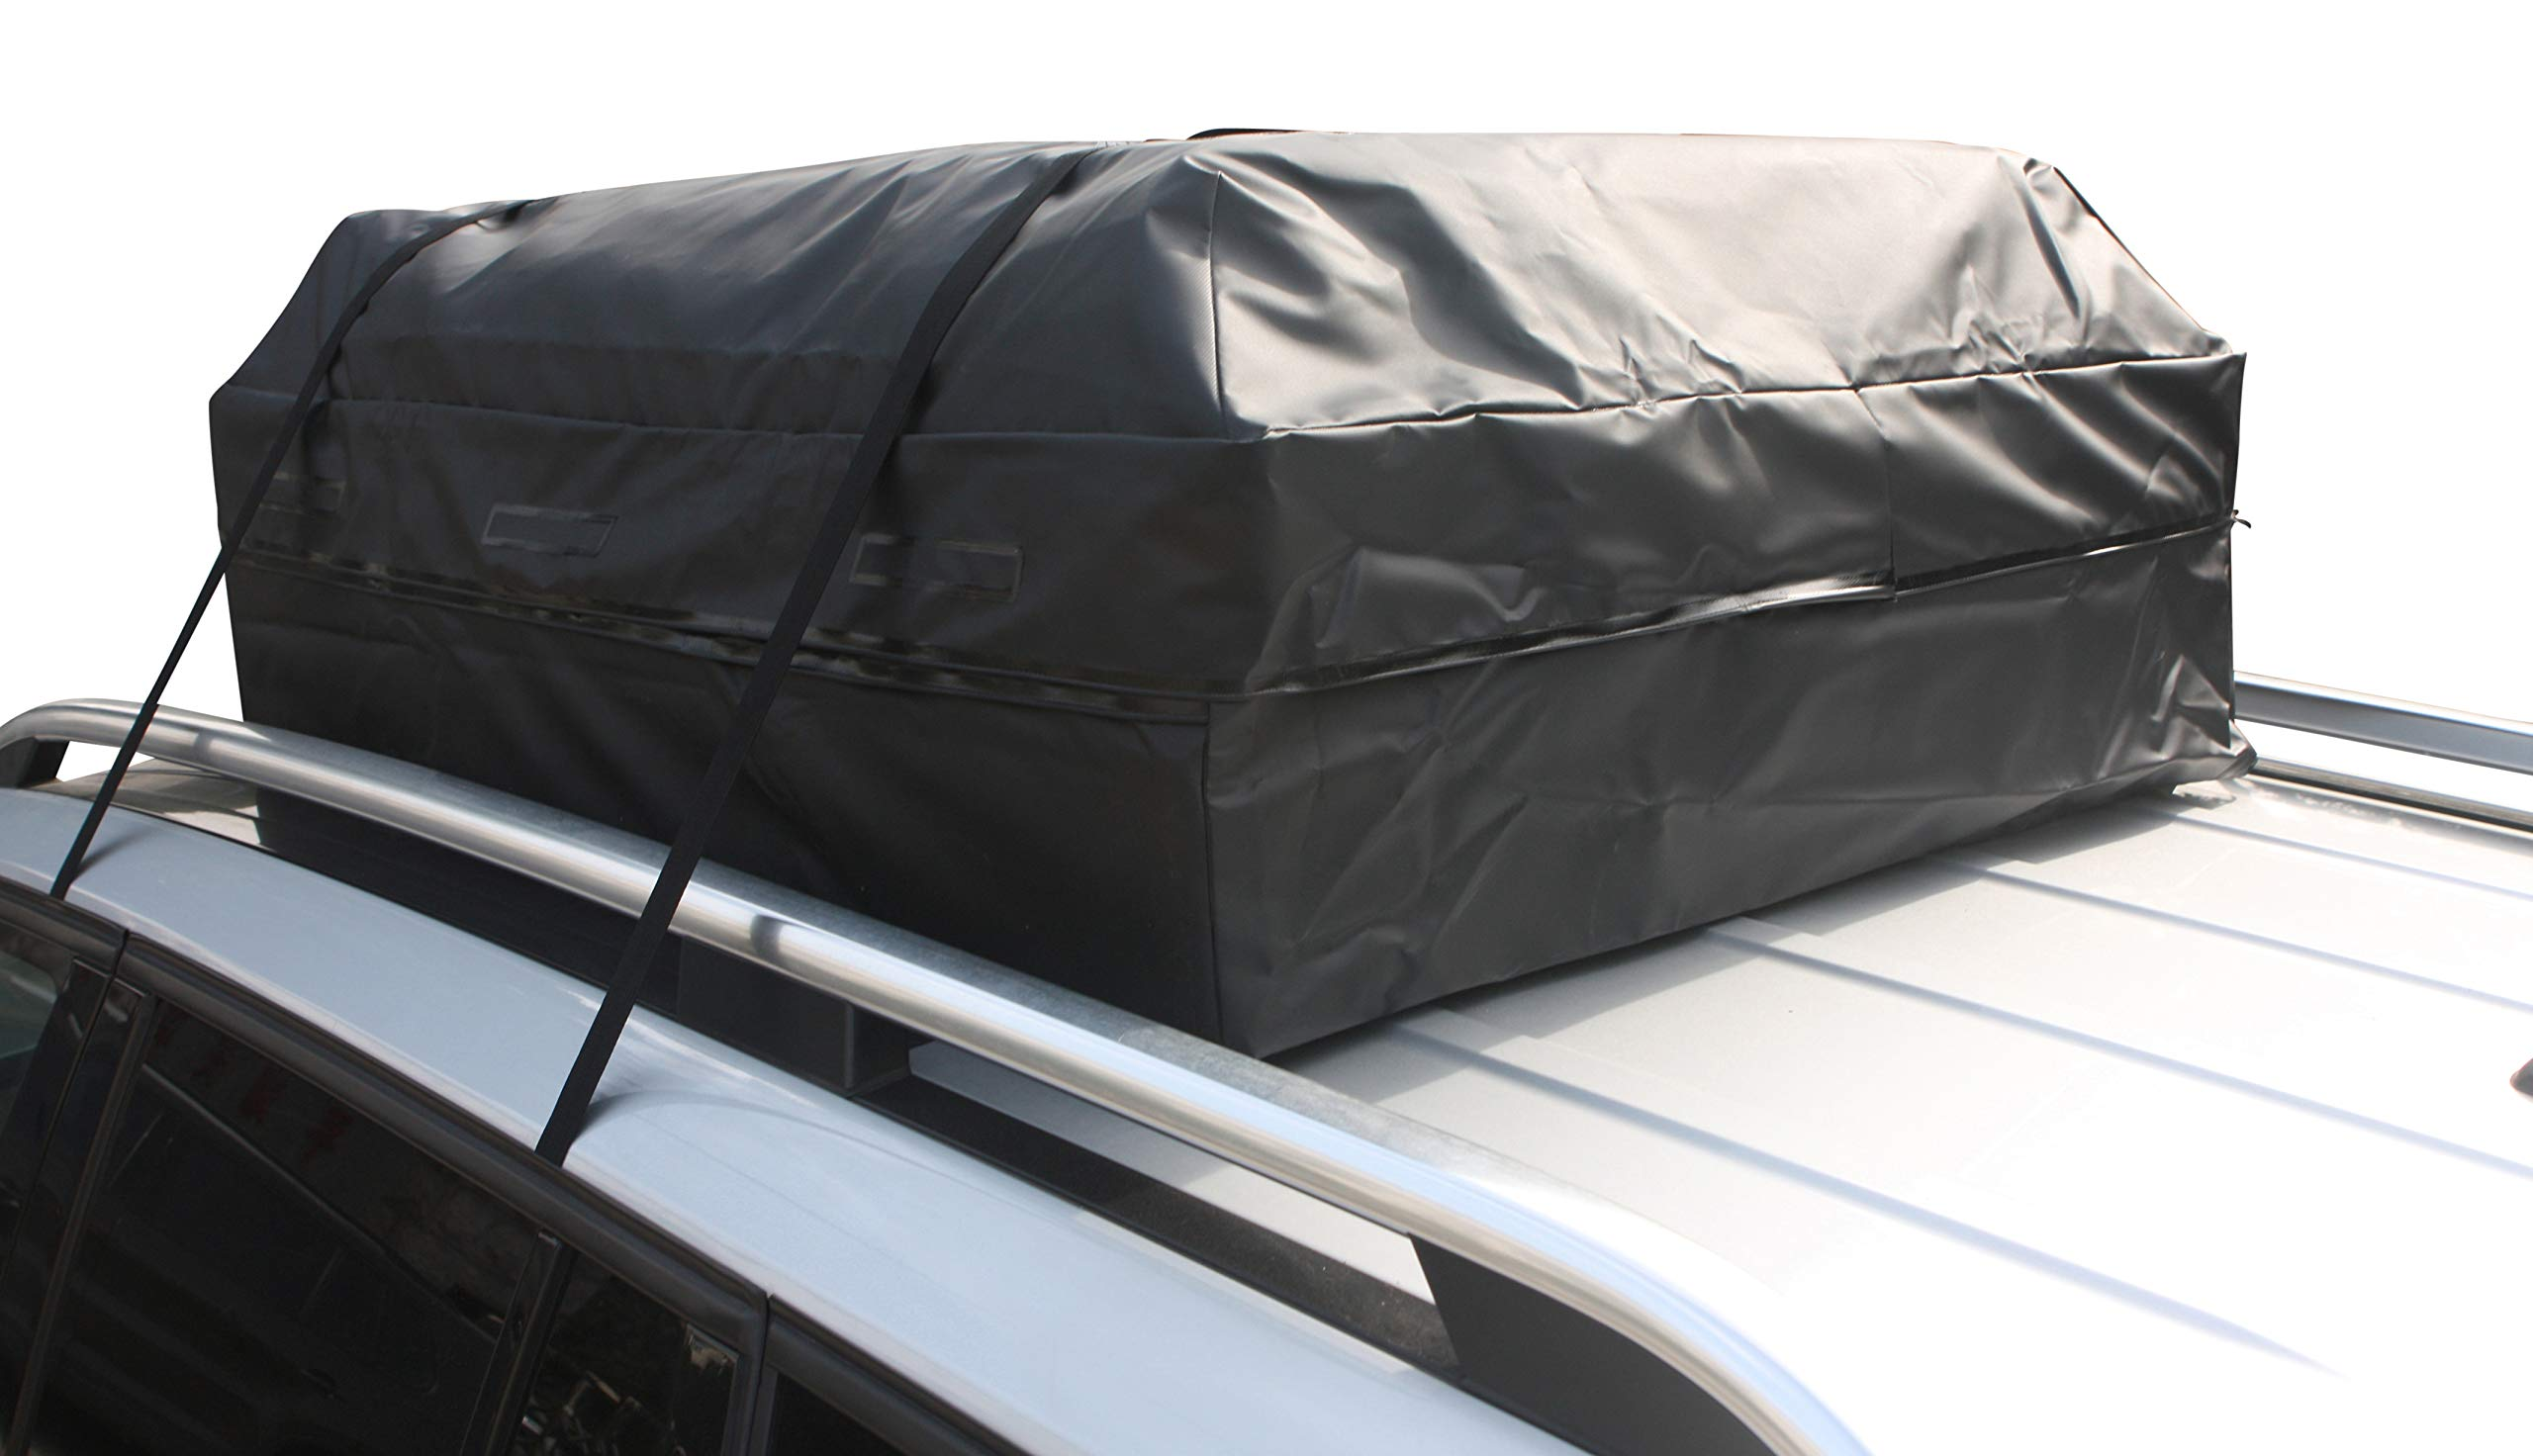 Perfection Updated Car Roof Bag Luggage Carrier Cargo Storage Roofbag for Cars w/o Racks, Attached Non-Slip Mat, Extra Rooftop Padding, Enhanced Safety Buckle by Perfection (Image #9)